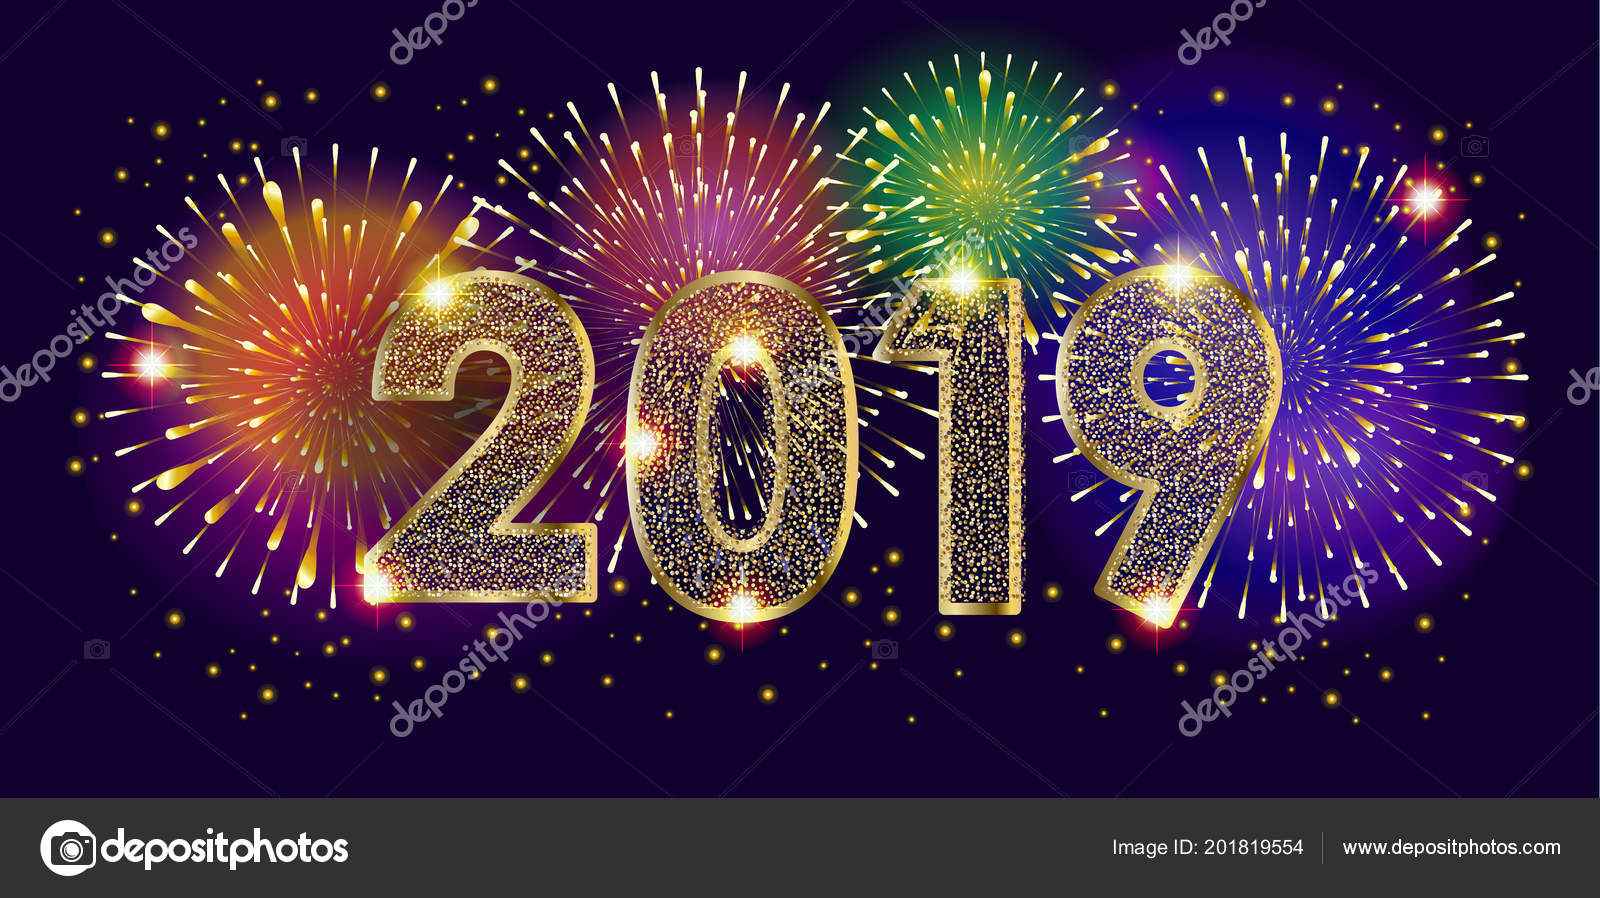 2019 fireworks festival happy new year decoration gold glitter starburst stock vector